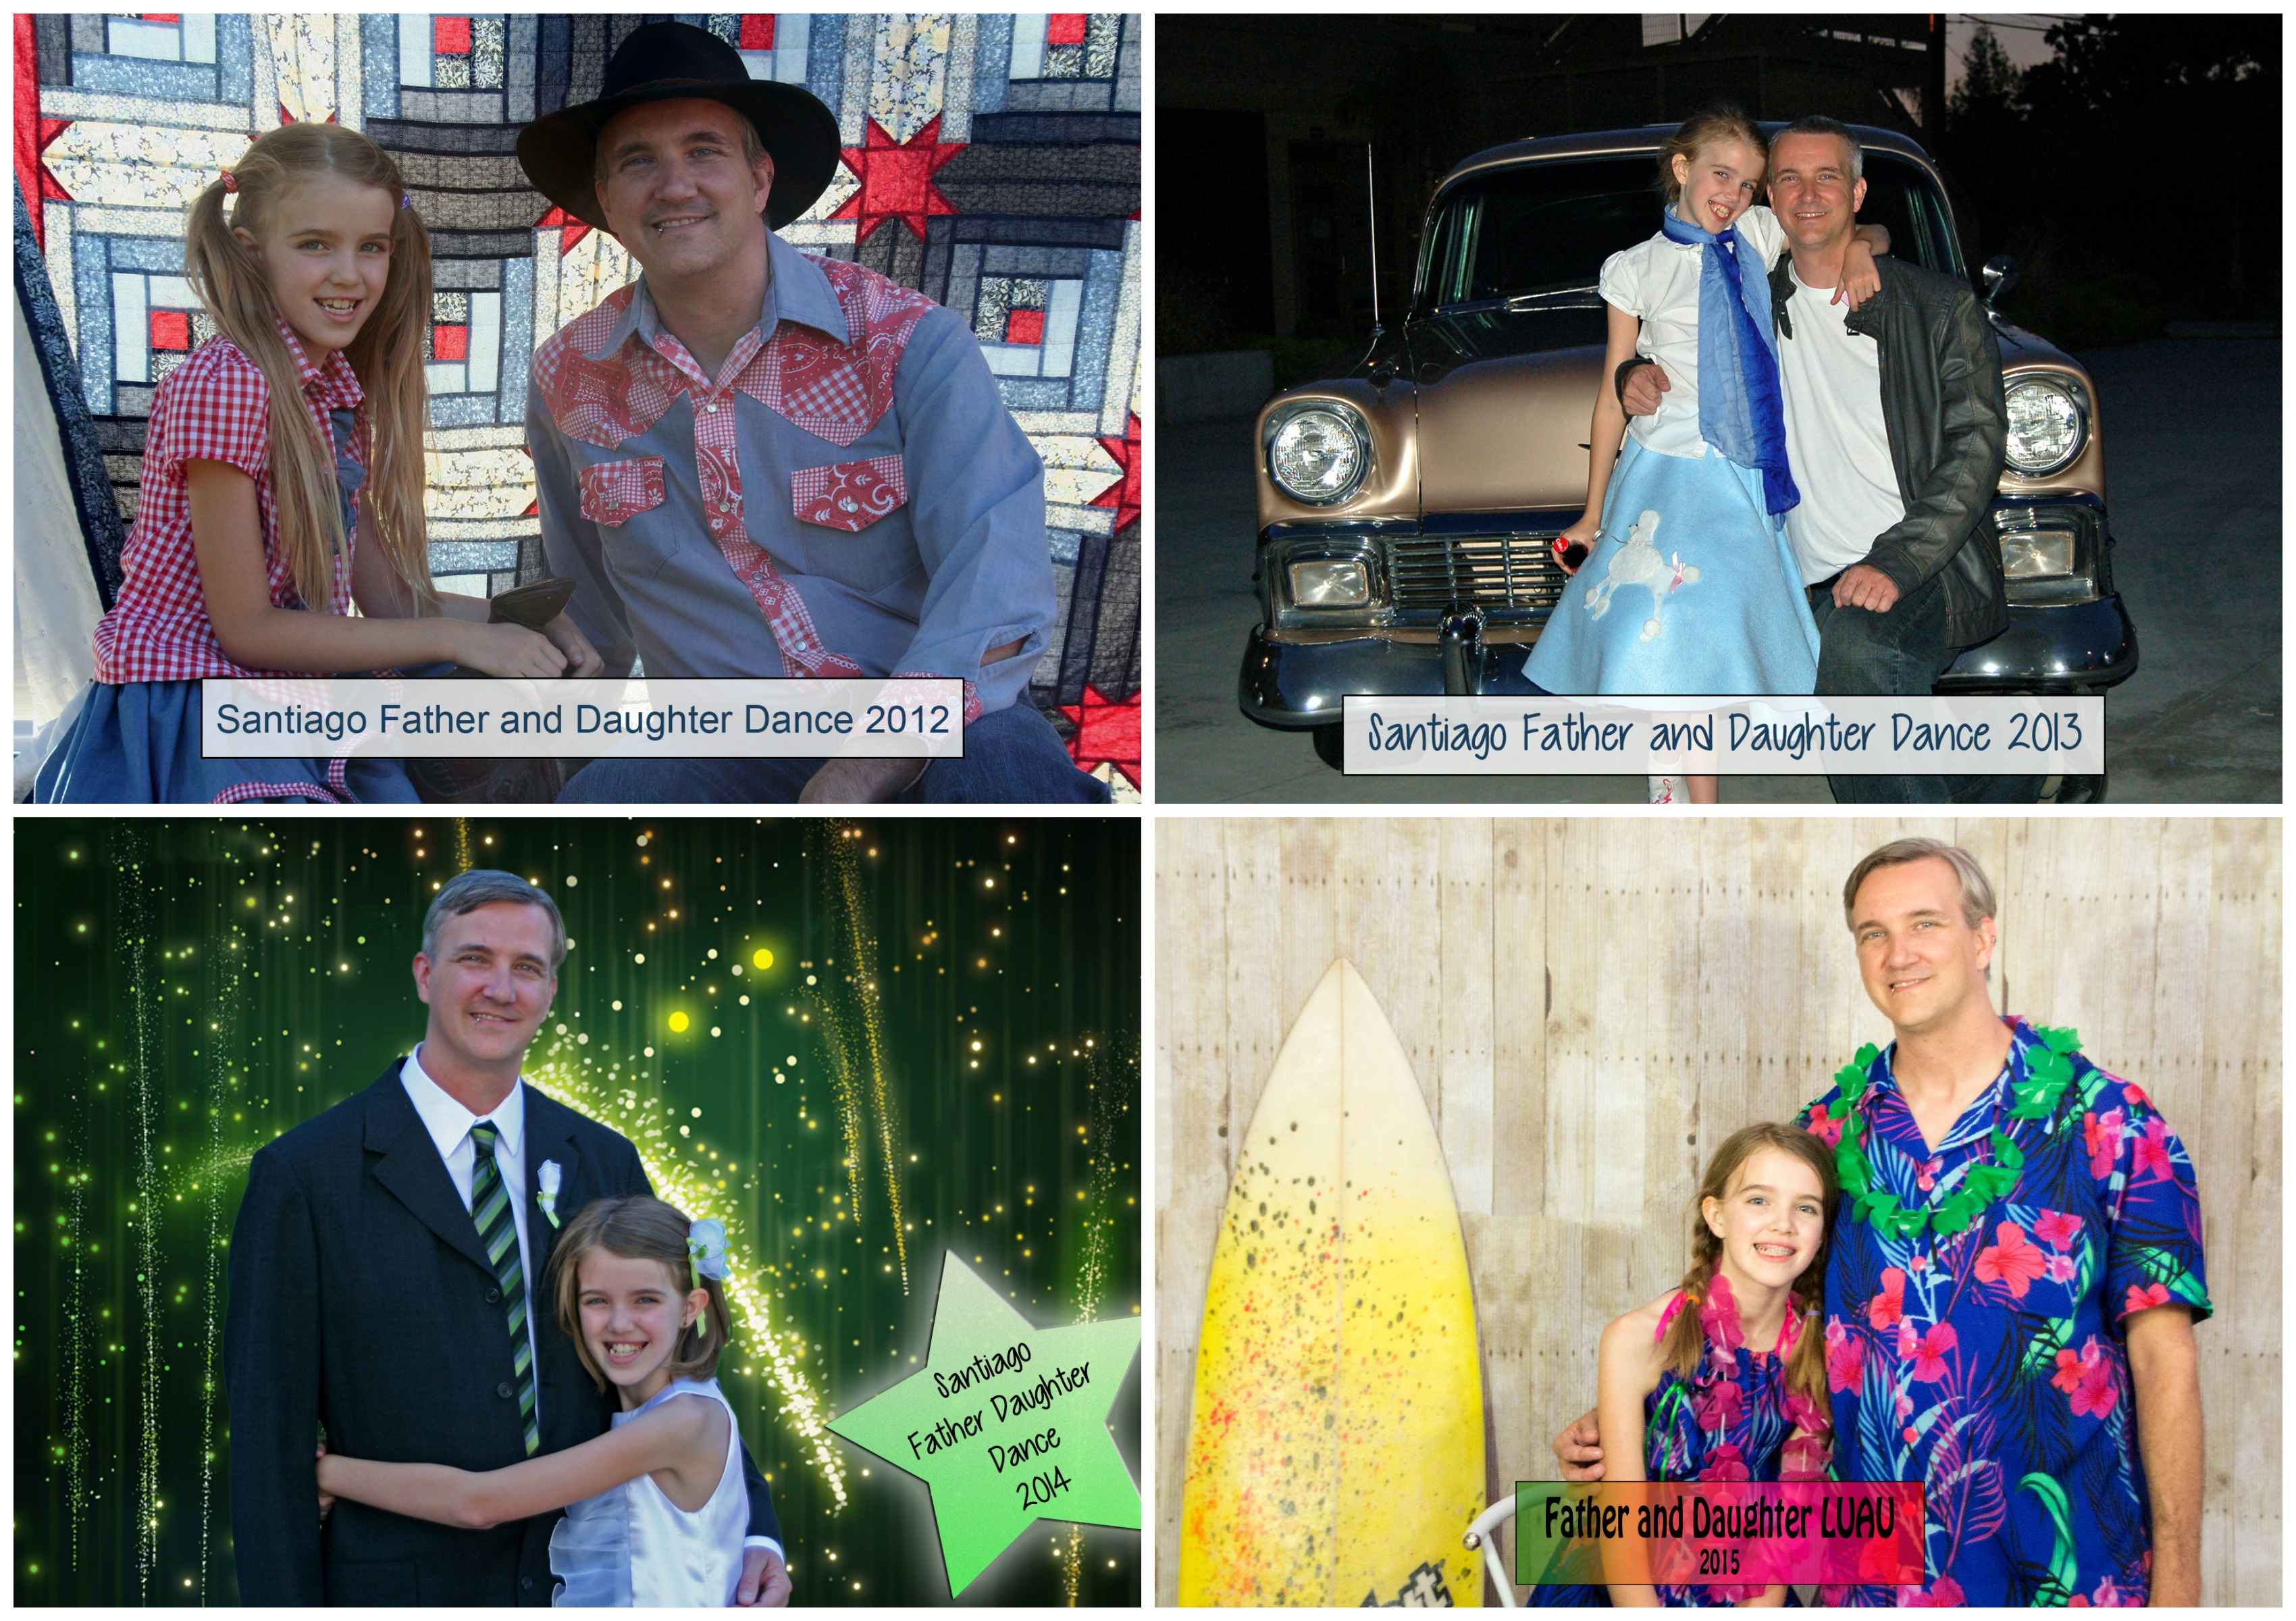 Father and Daughter LUAU | The Fourth Annual Father and Daughter ...